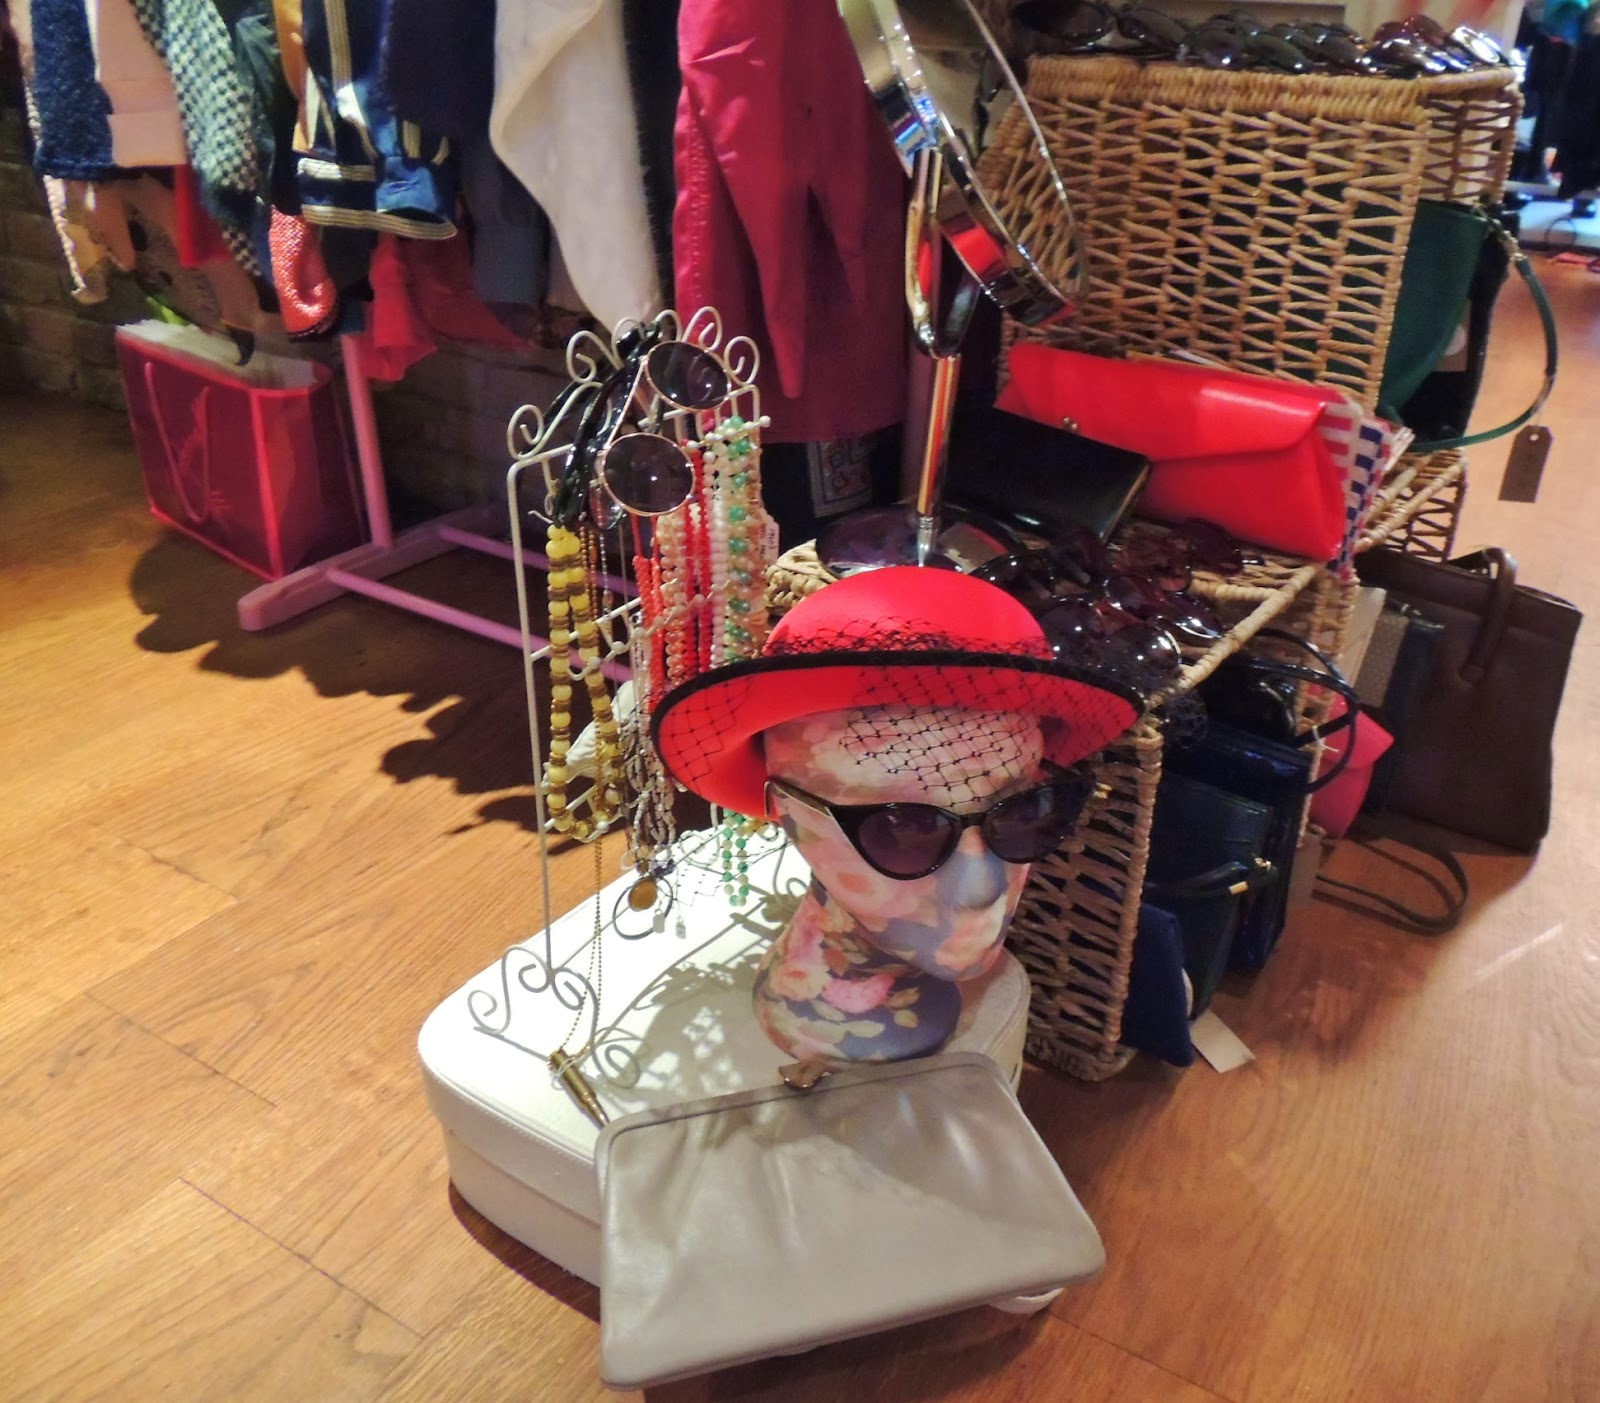 Vintage stall with red retro hat